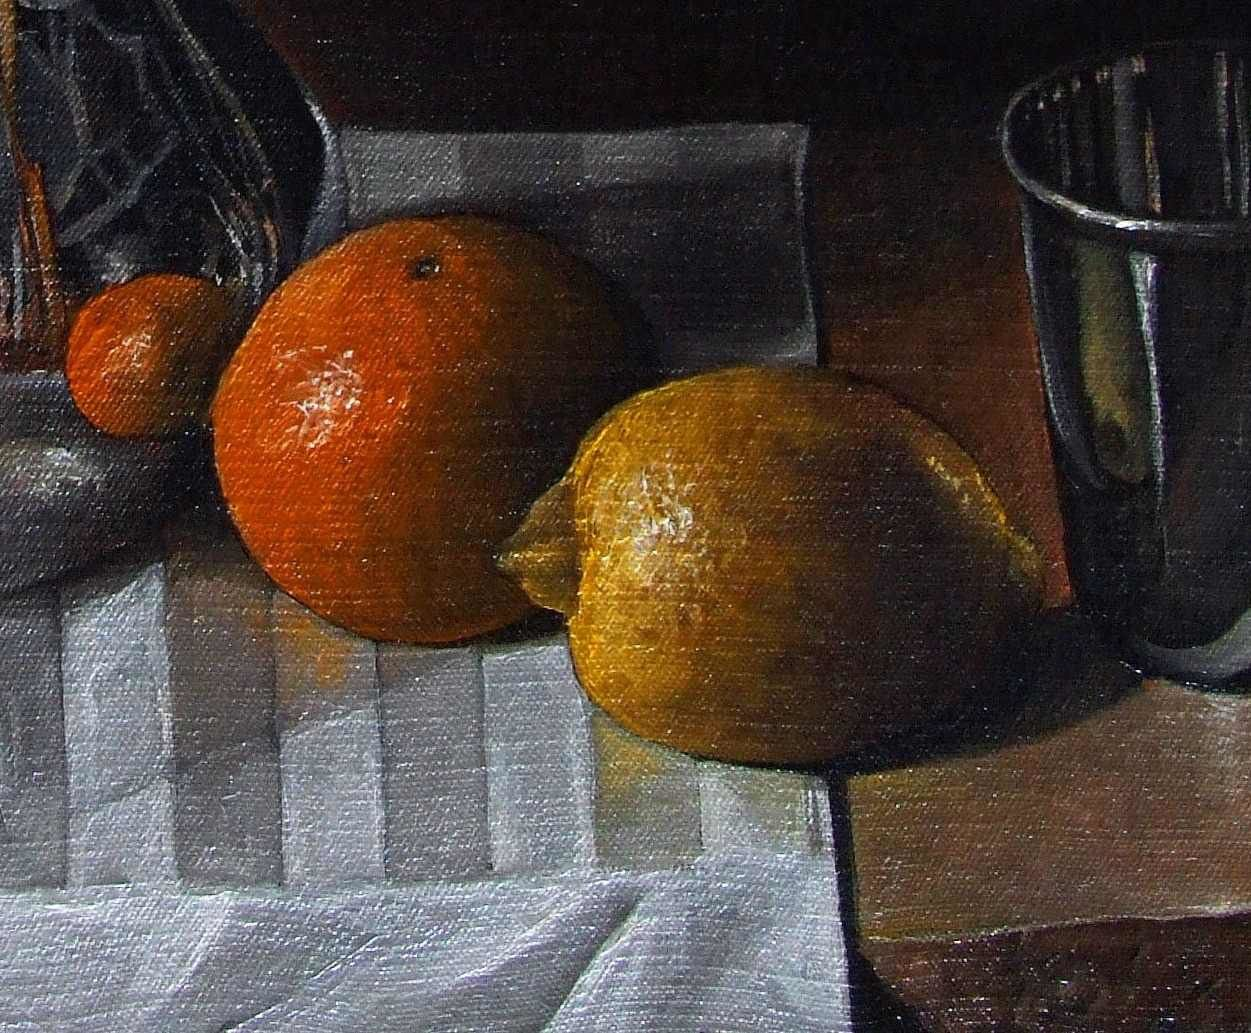 argenterie, citron et orange HT 21 02 09 - Copie